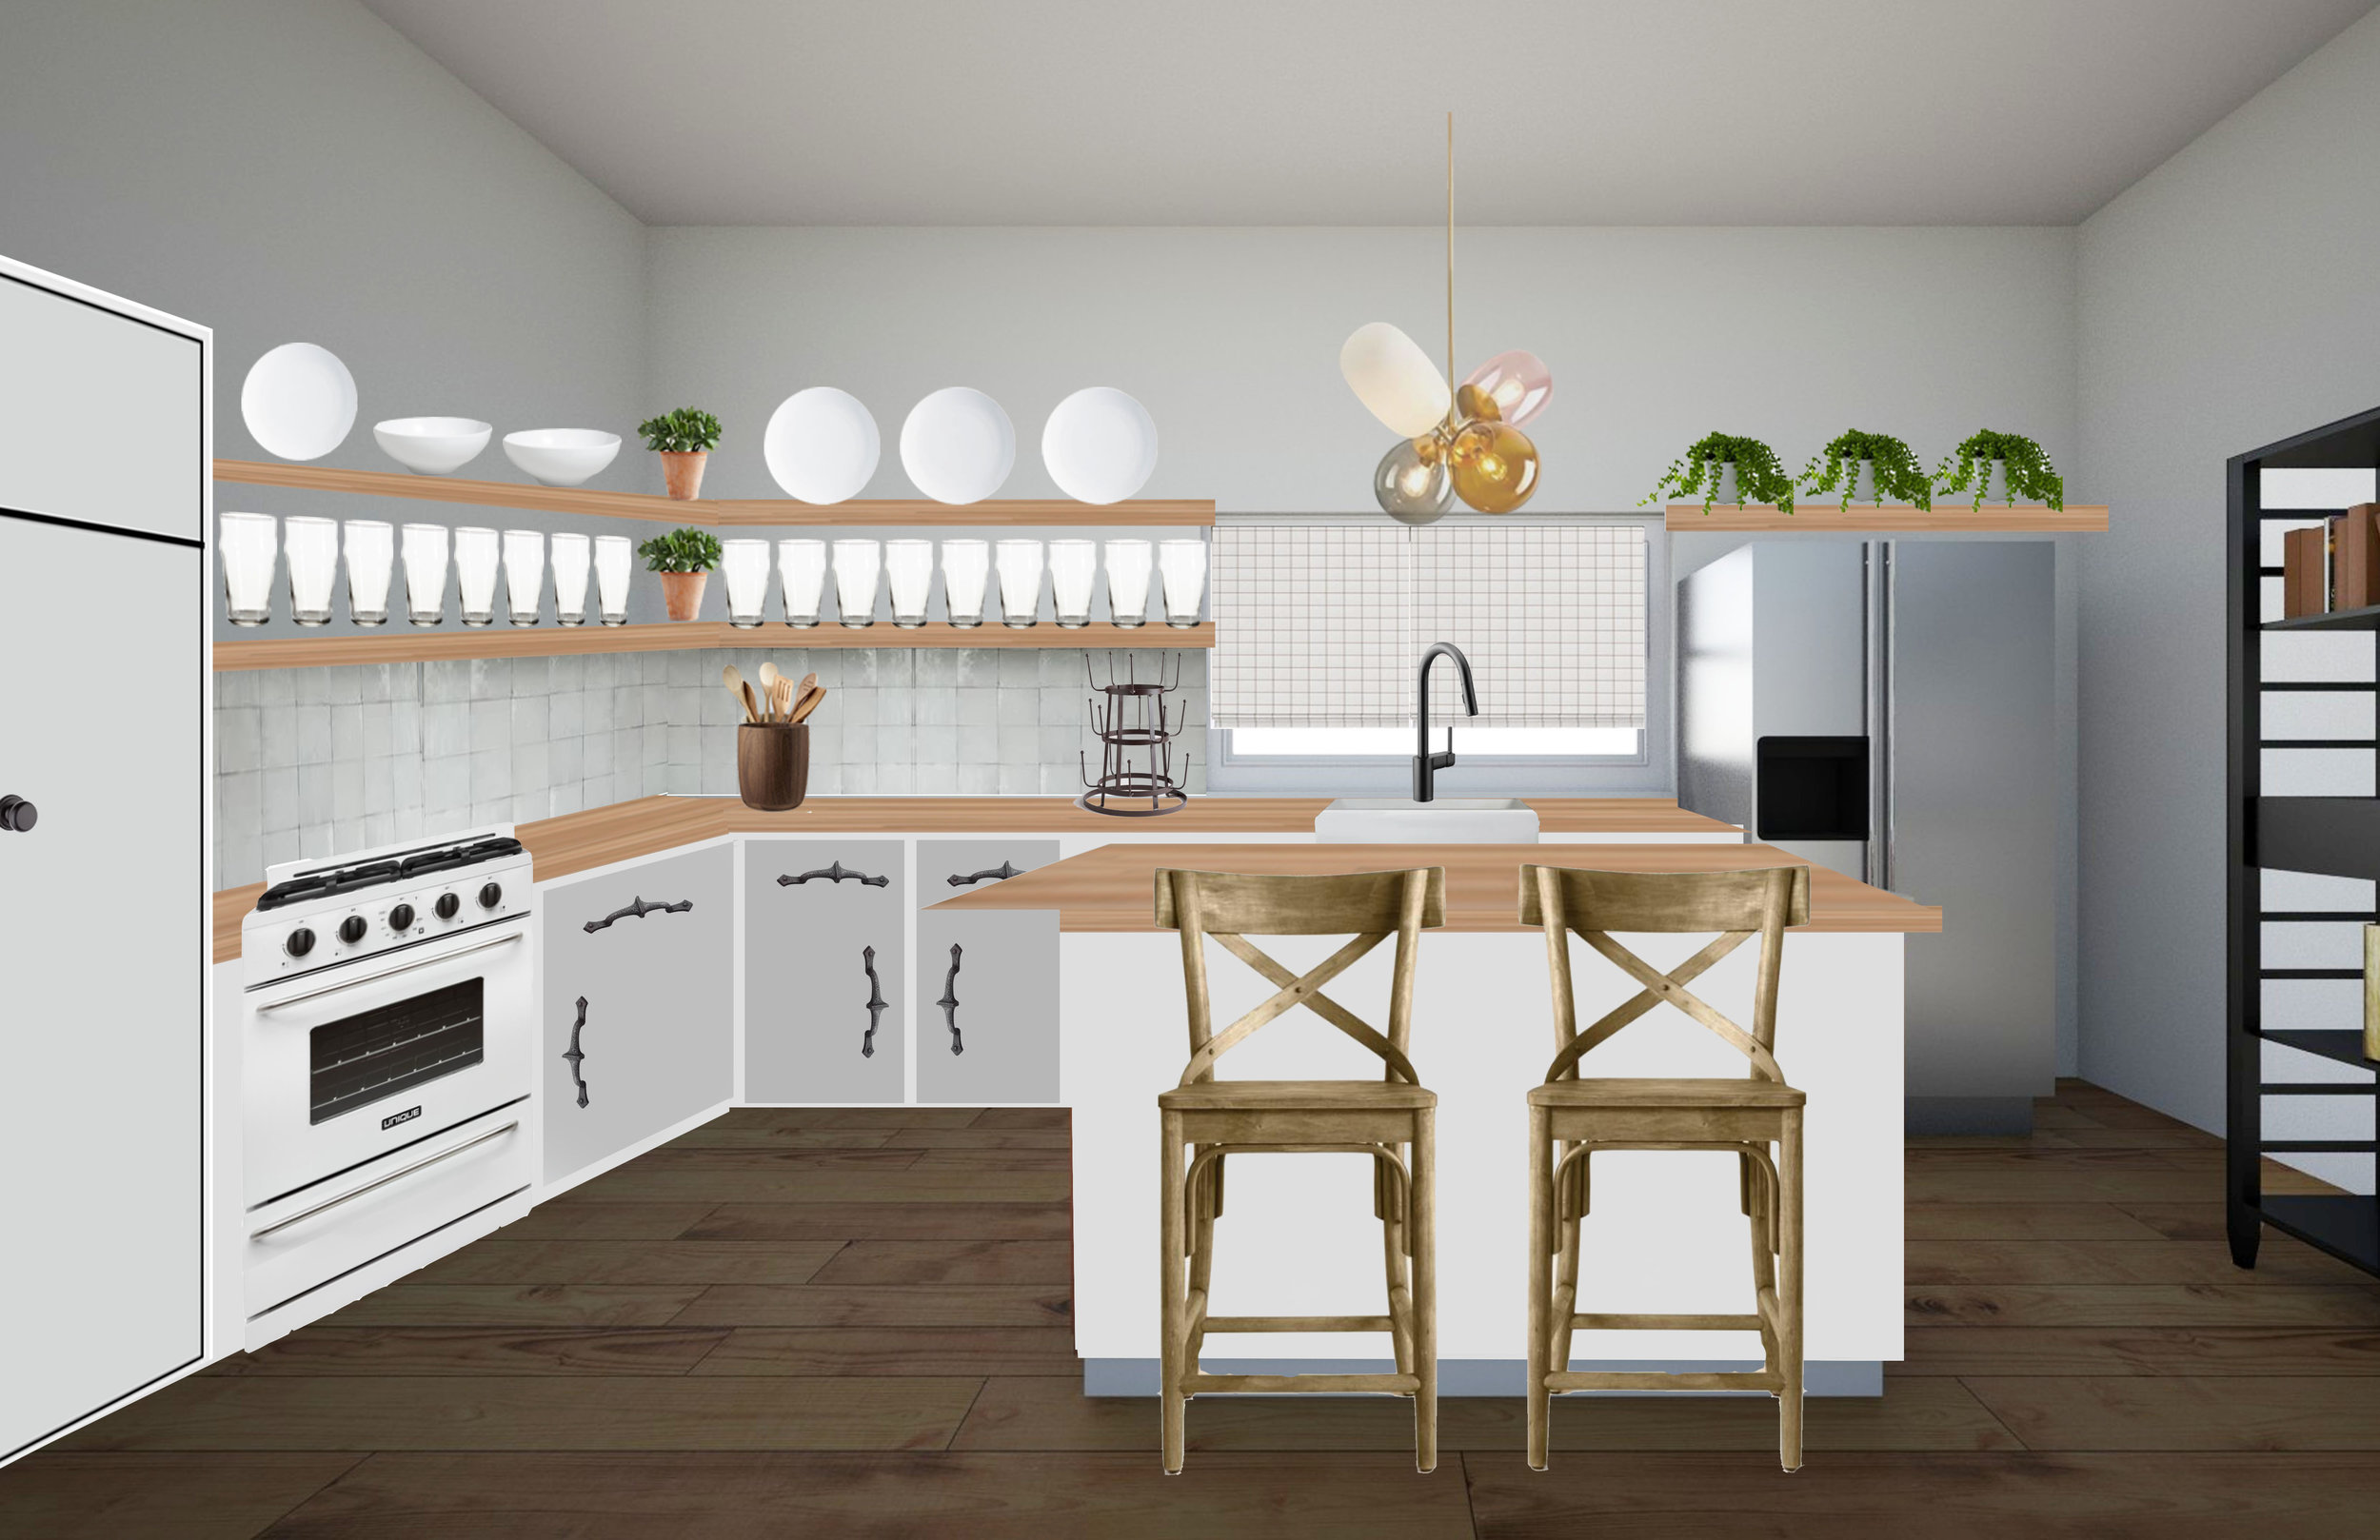 Heidi Final Kitchen render A.jpg